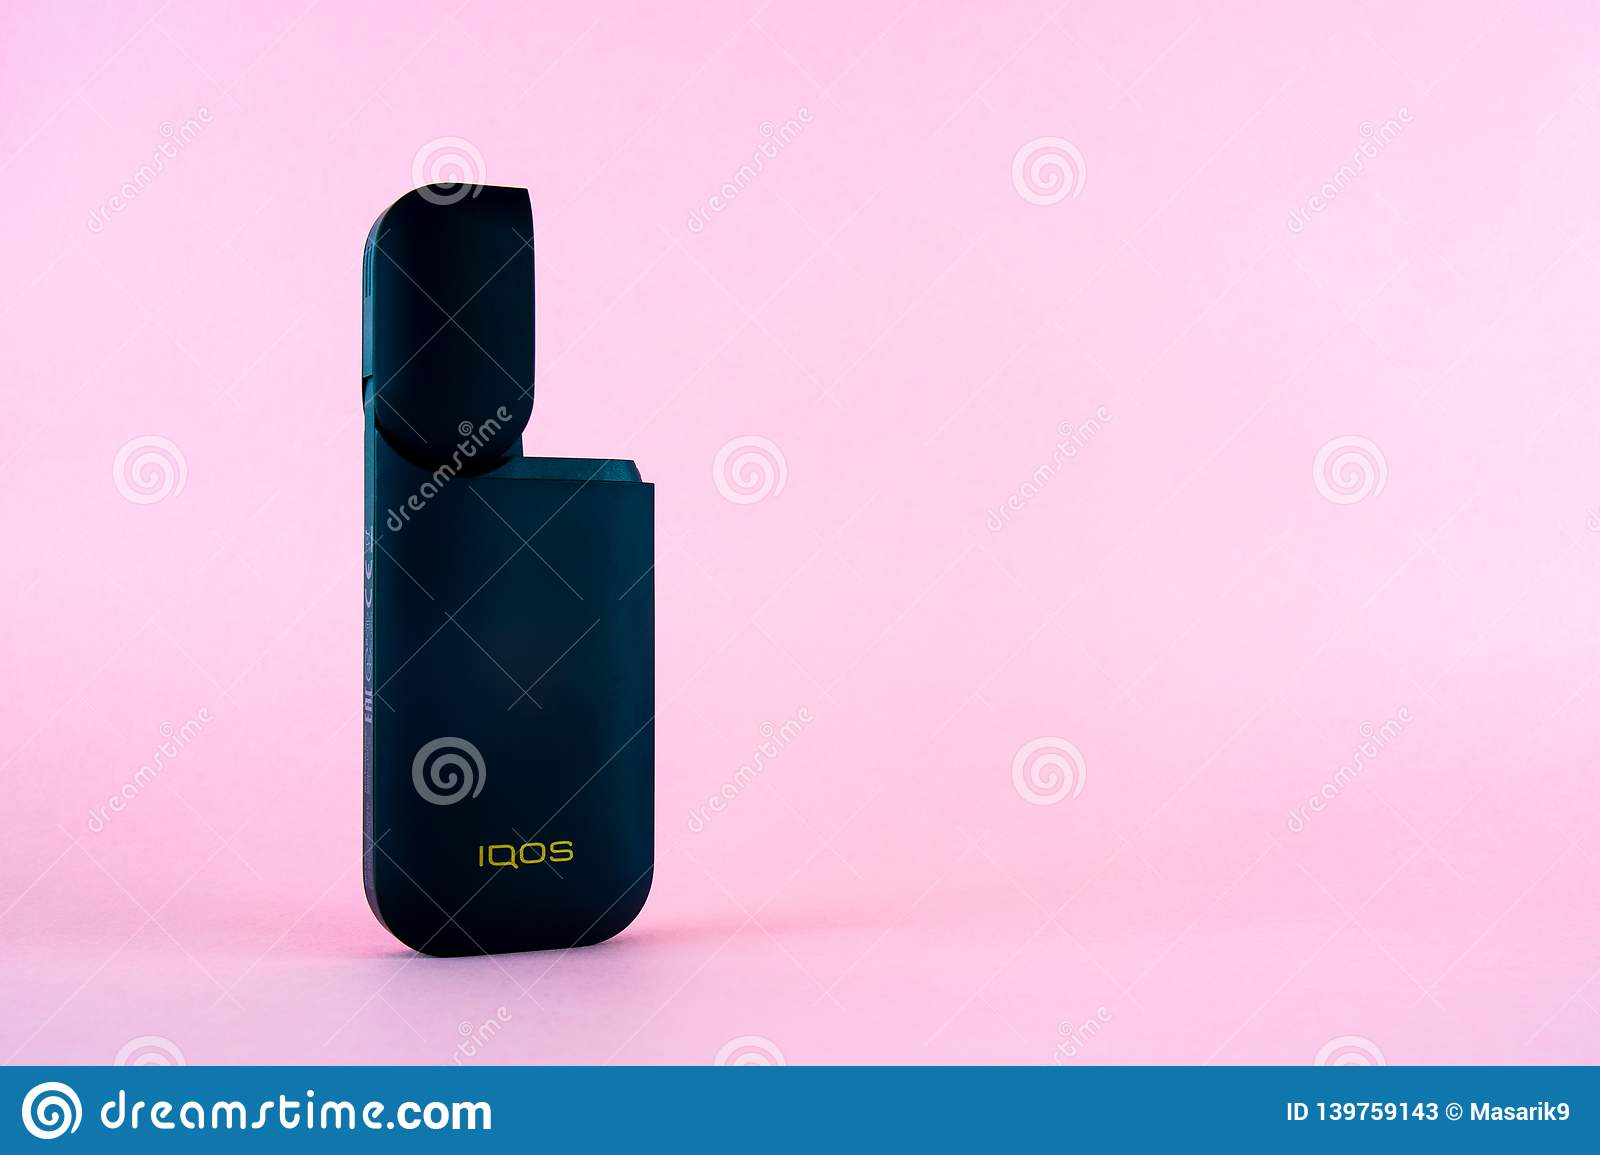 ROSTOV-ON-DON, RUSSIA - January 03, 2019: Newest IQOS